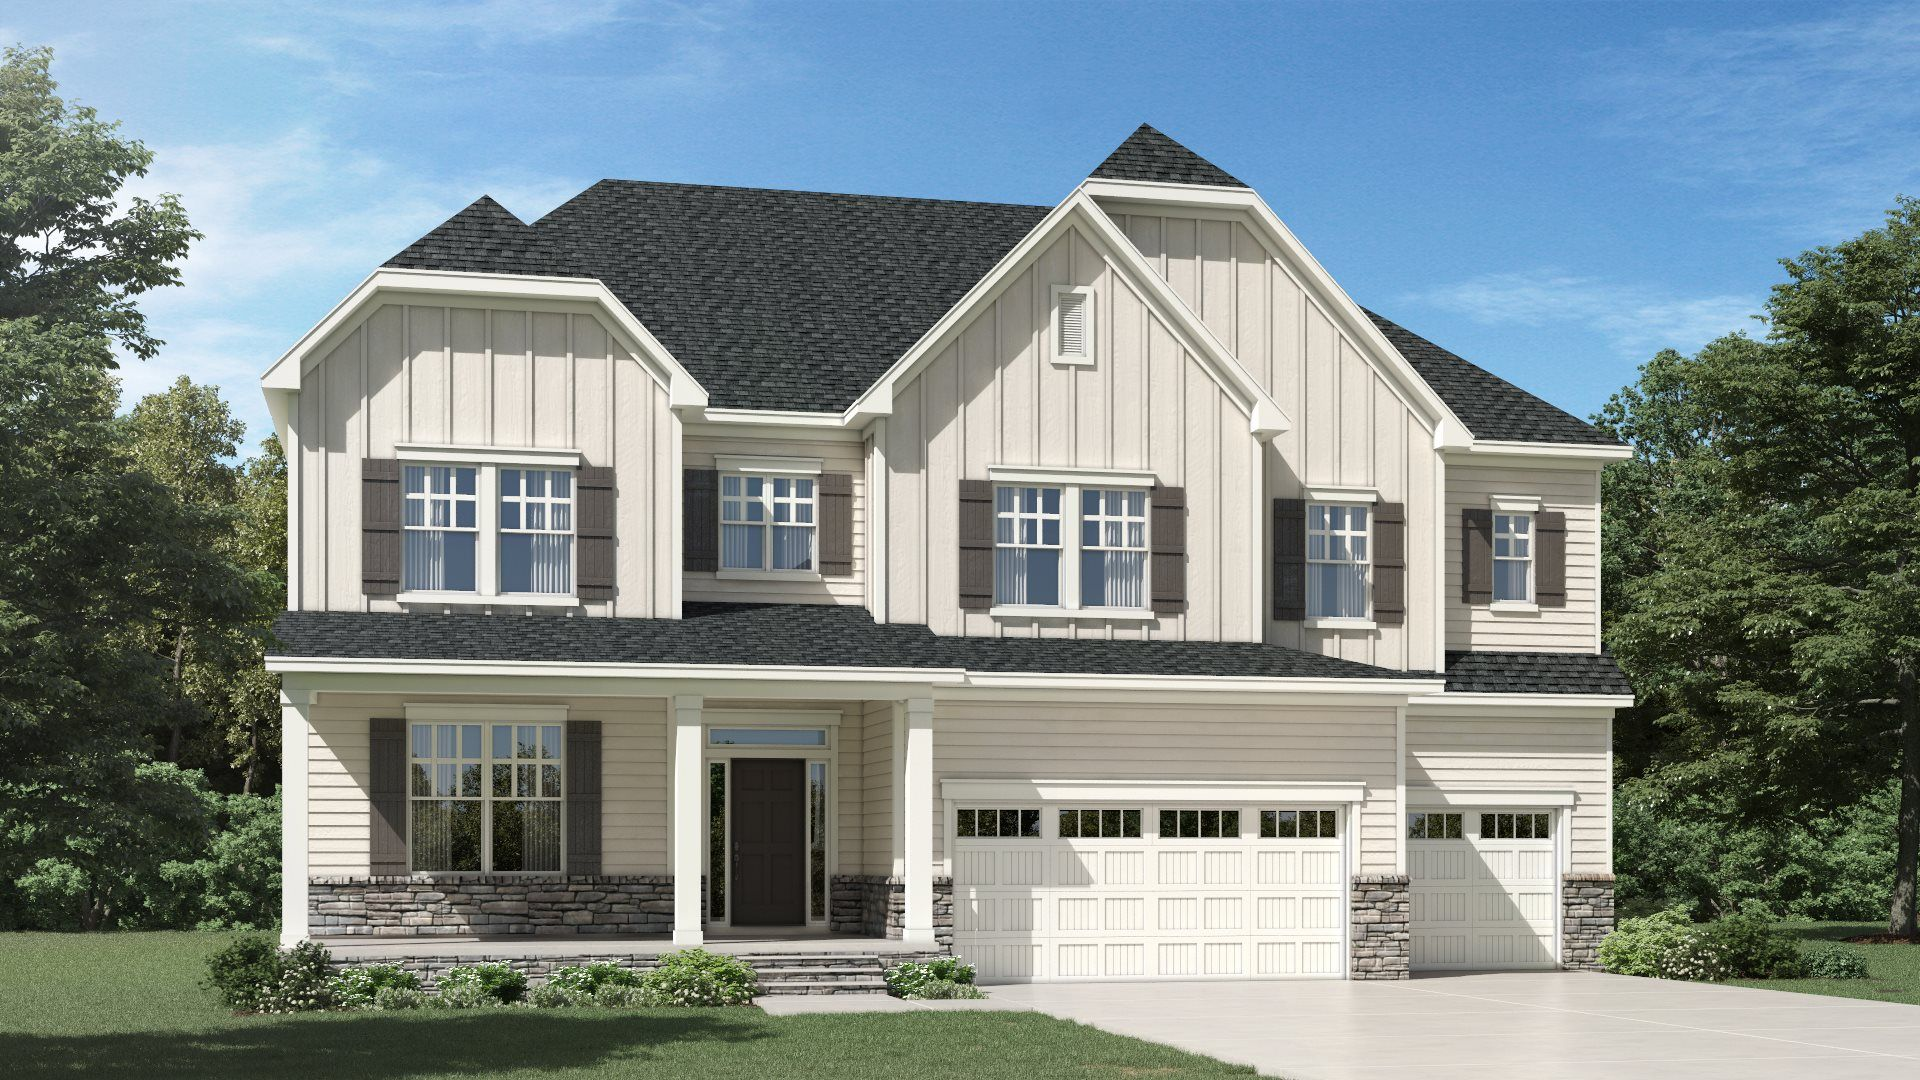 The Mills at Avent Ferry - New Homes in Holly Springs